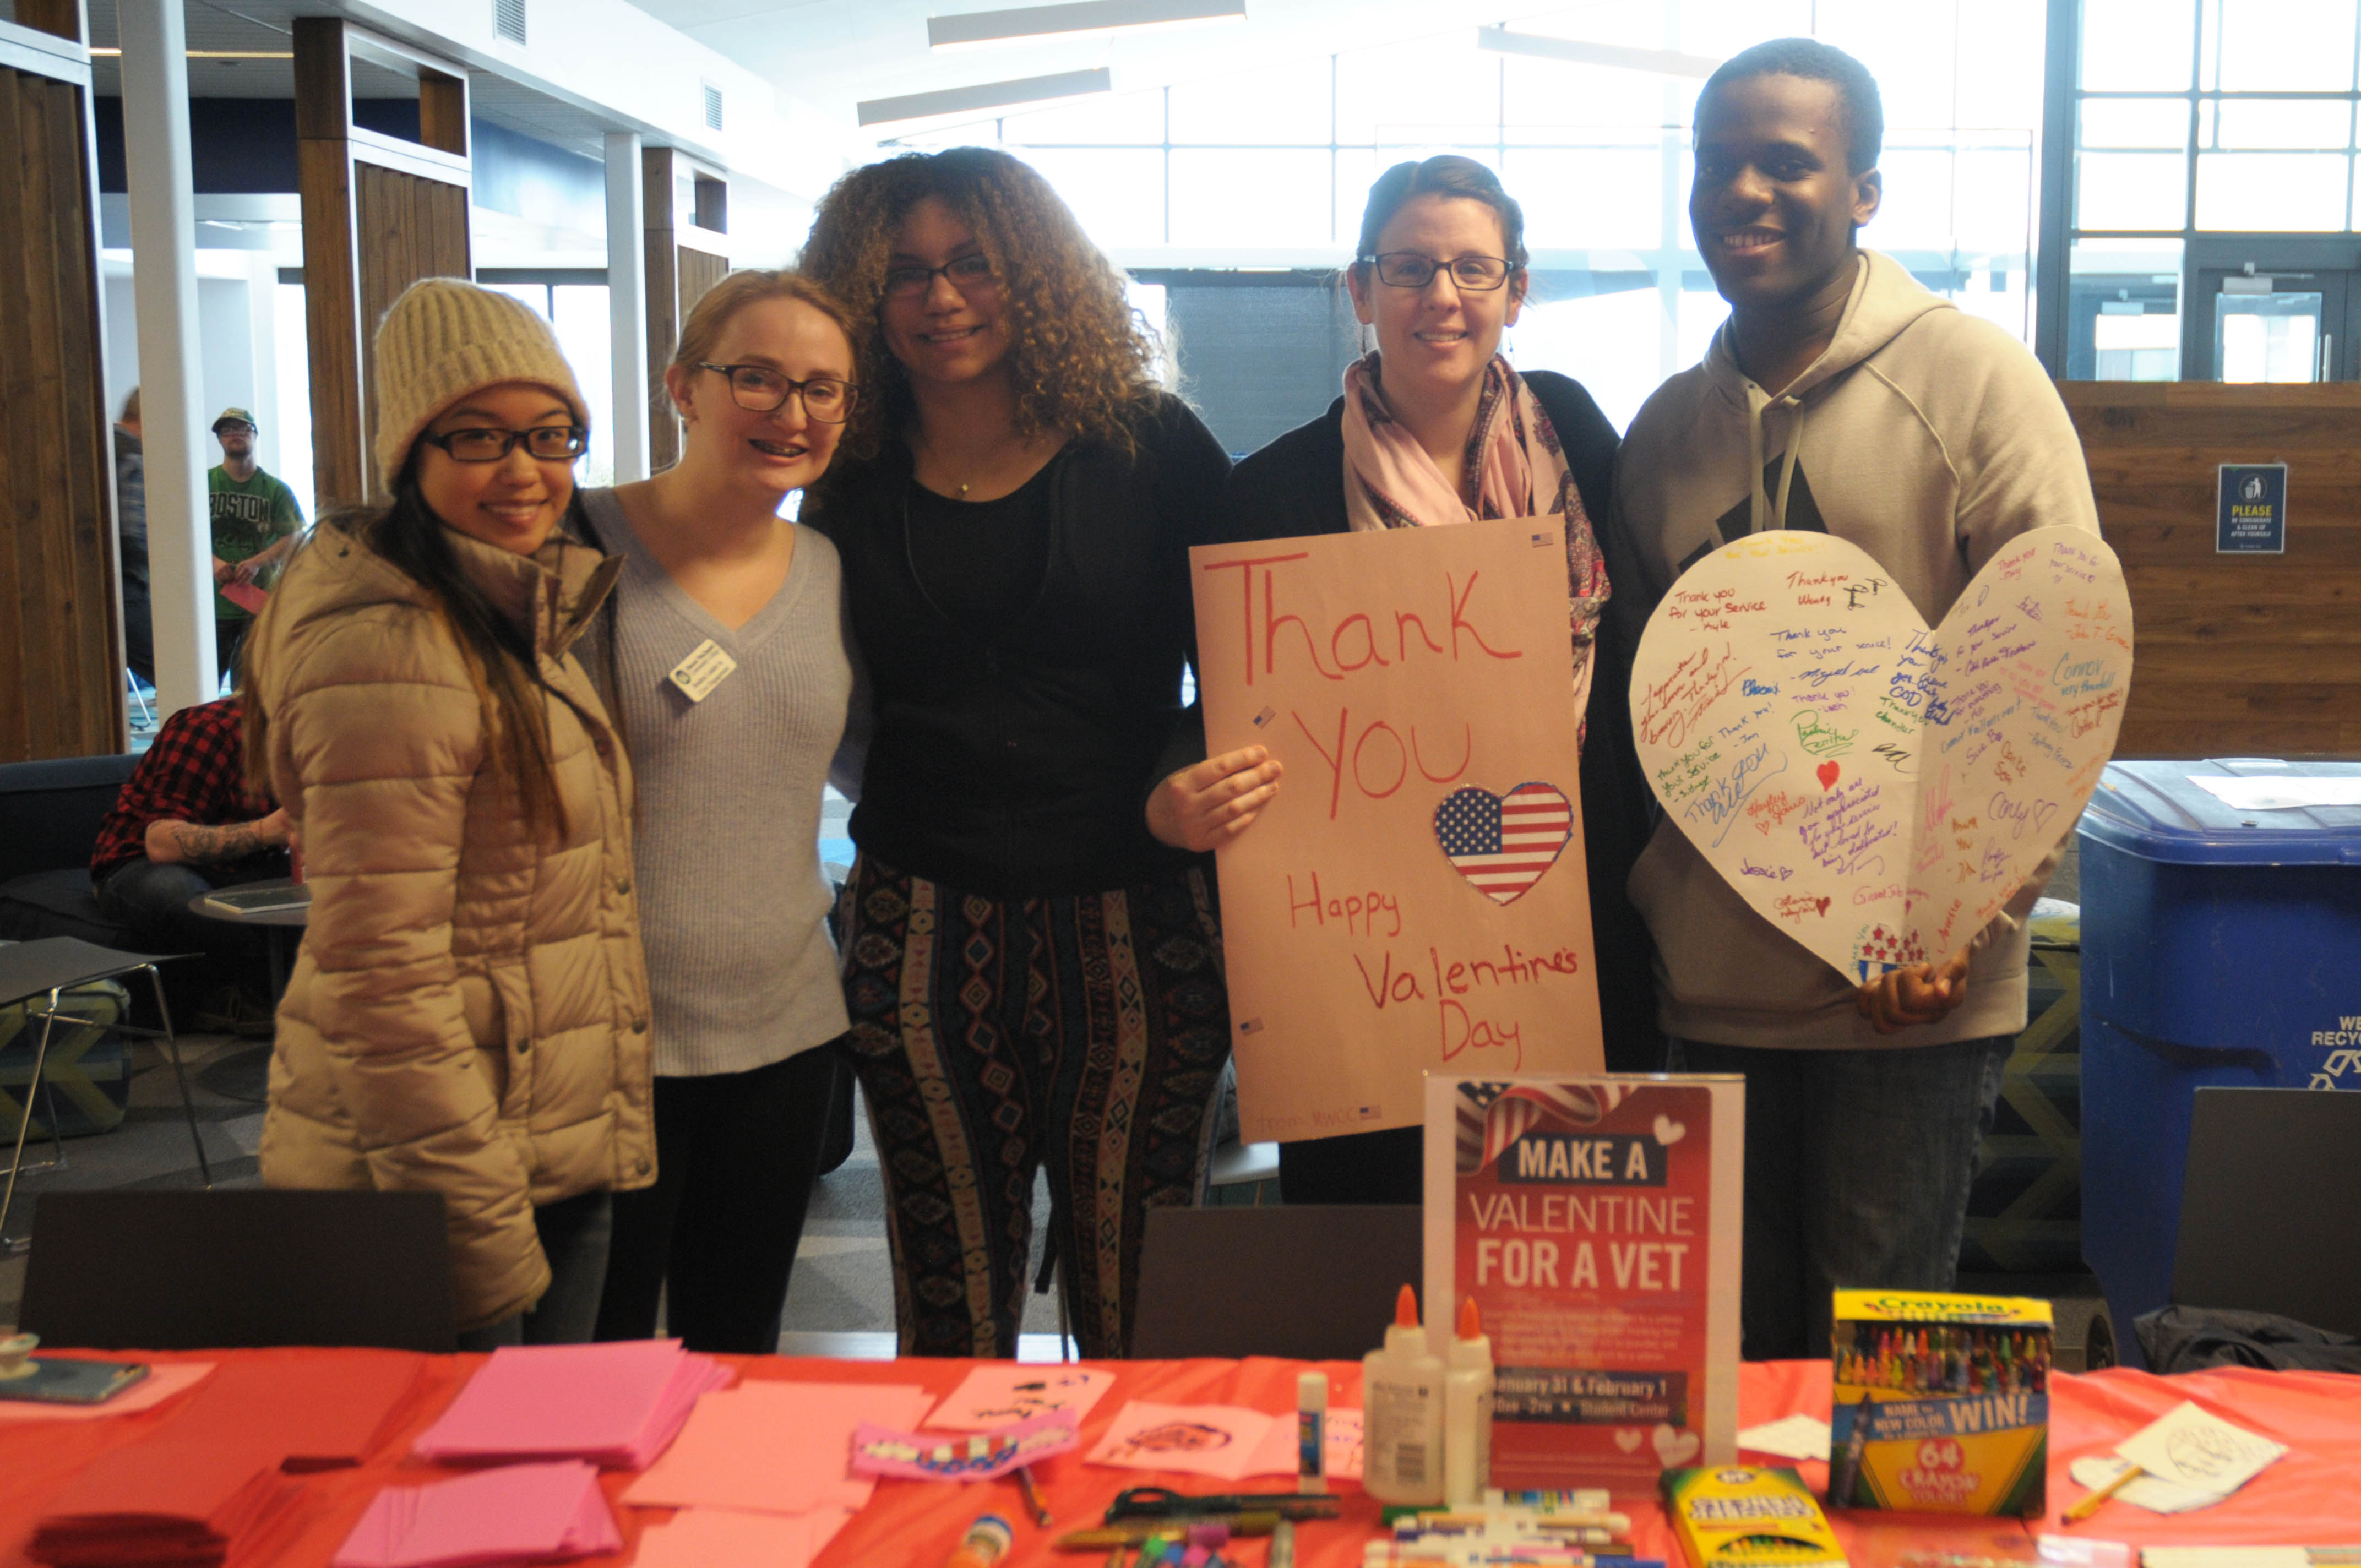 Group of students standing in front of the Valentines for Vets table holding giant cards